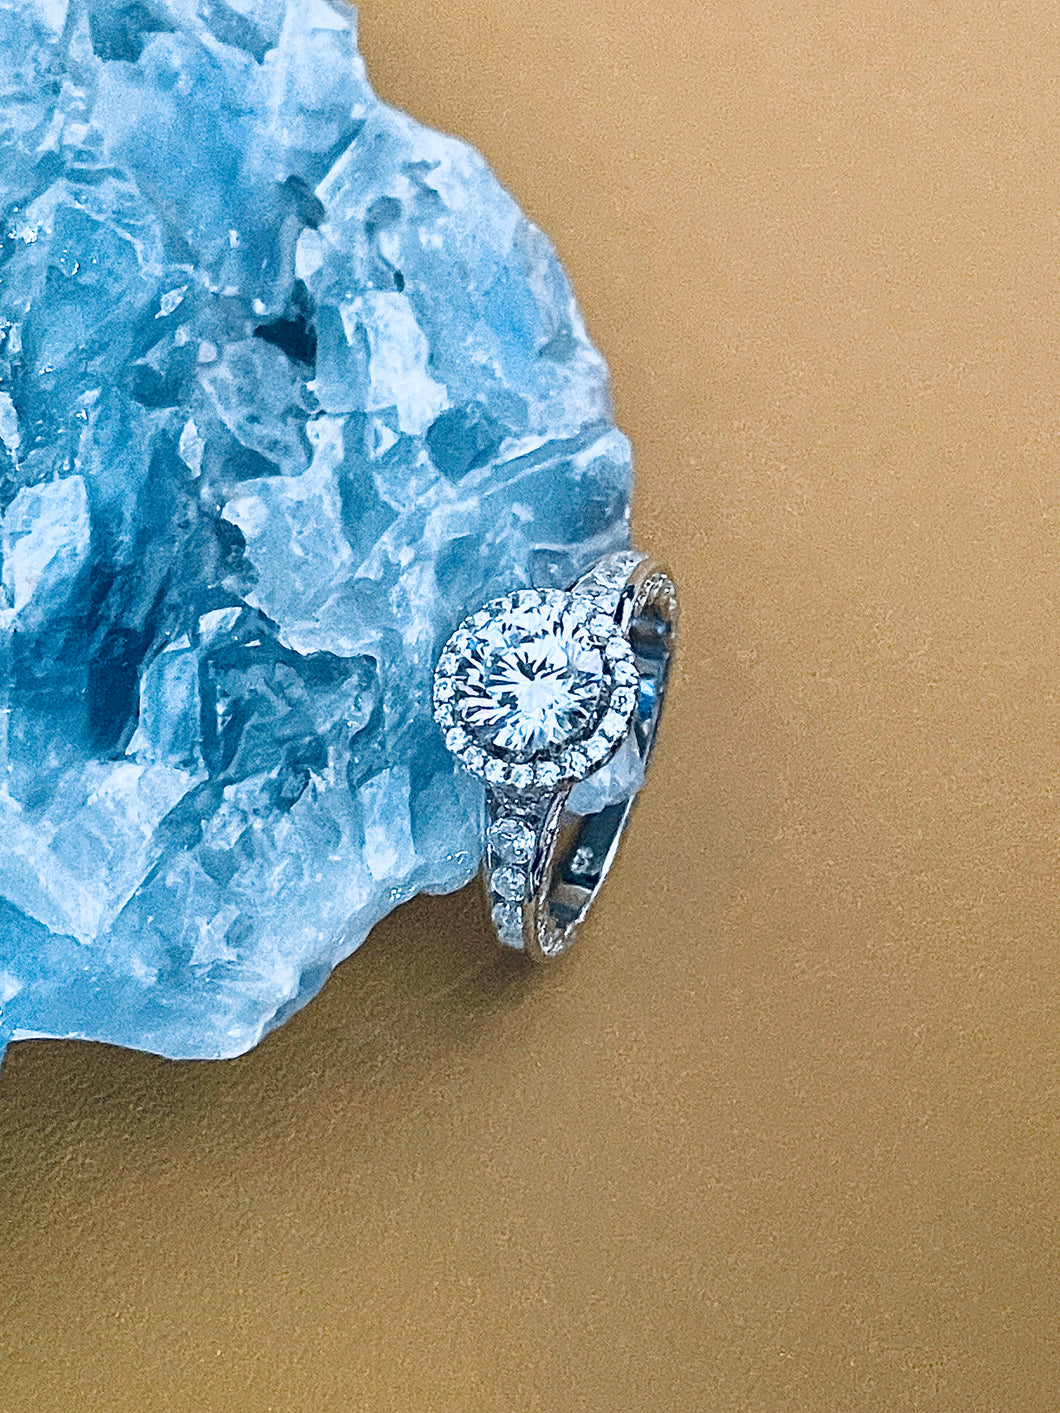 NAOMI - 1.65ct Sterling Brilliant Round-Cut CZ Ring In Silver - JohnnyB Jewelry